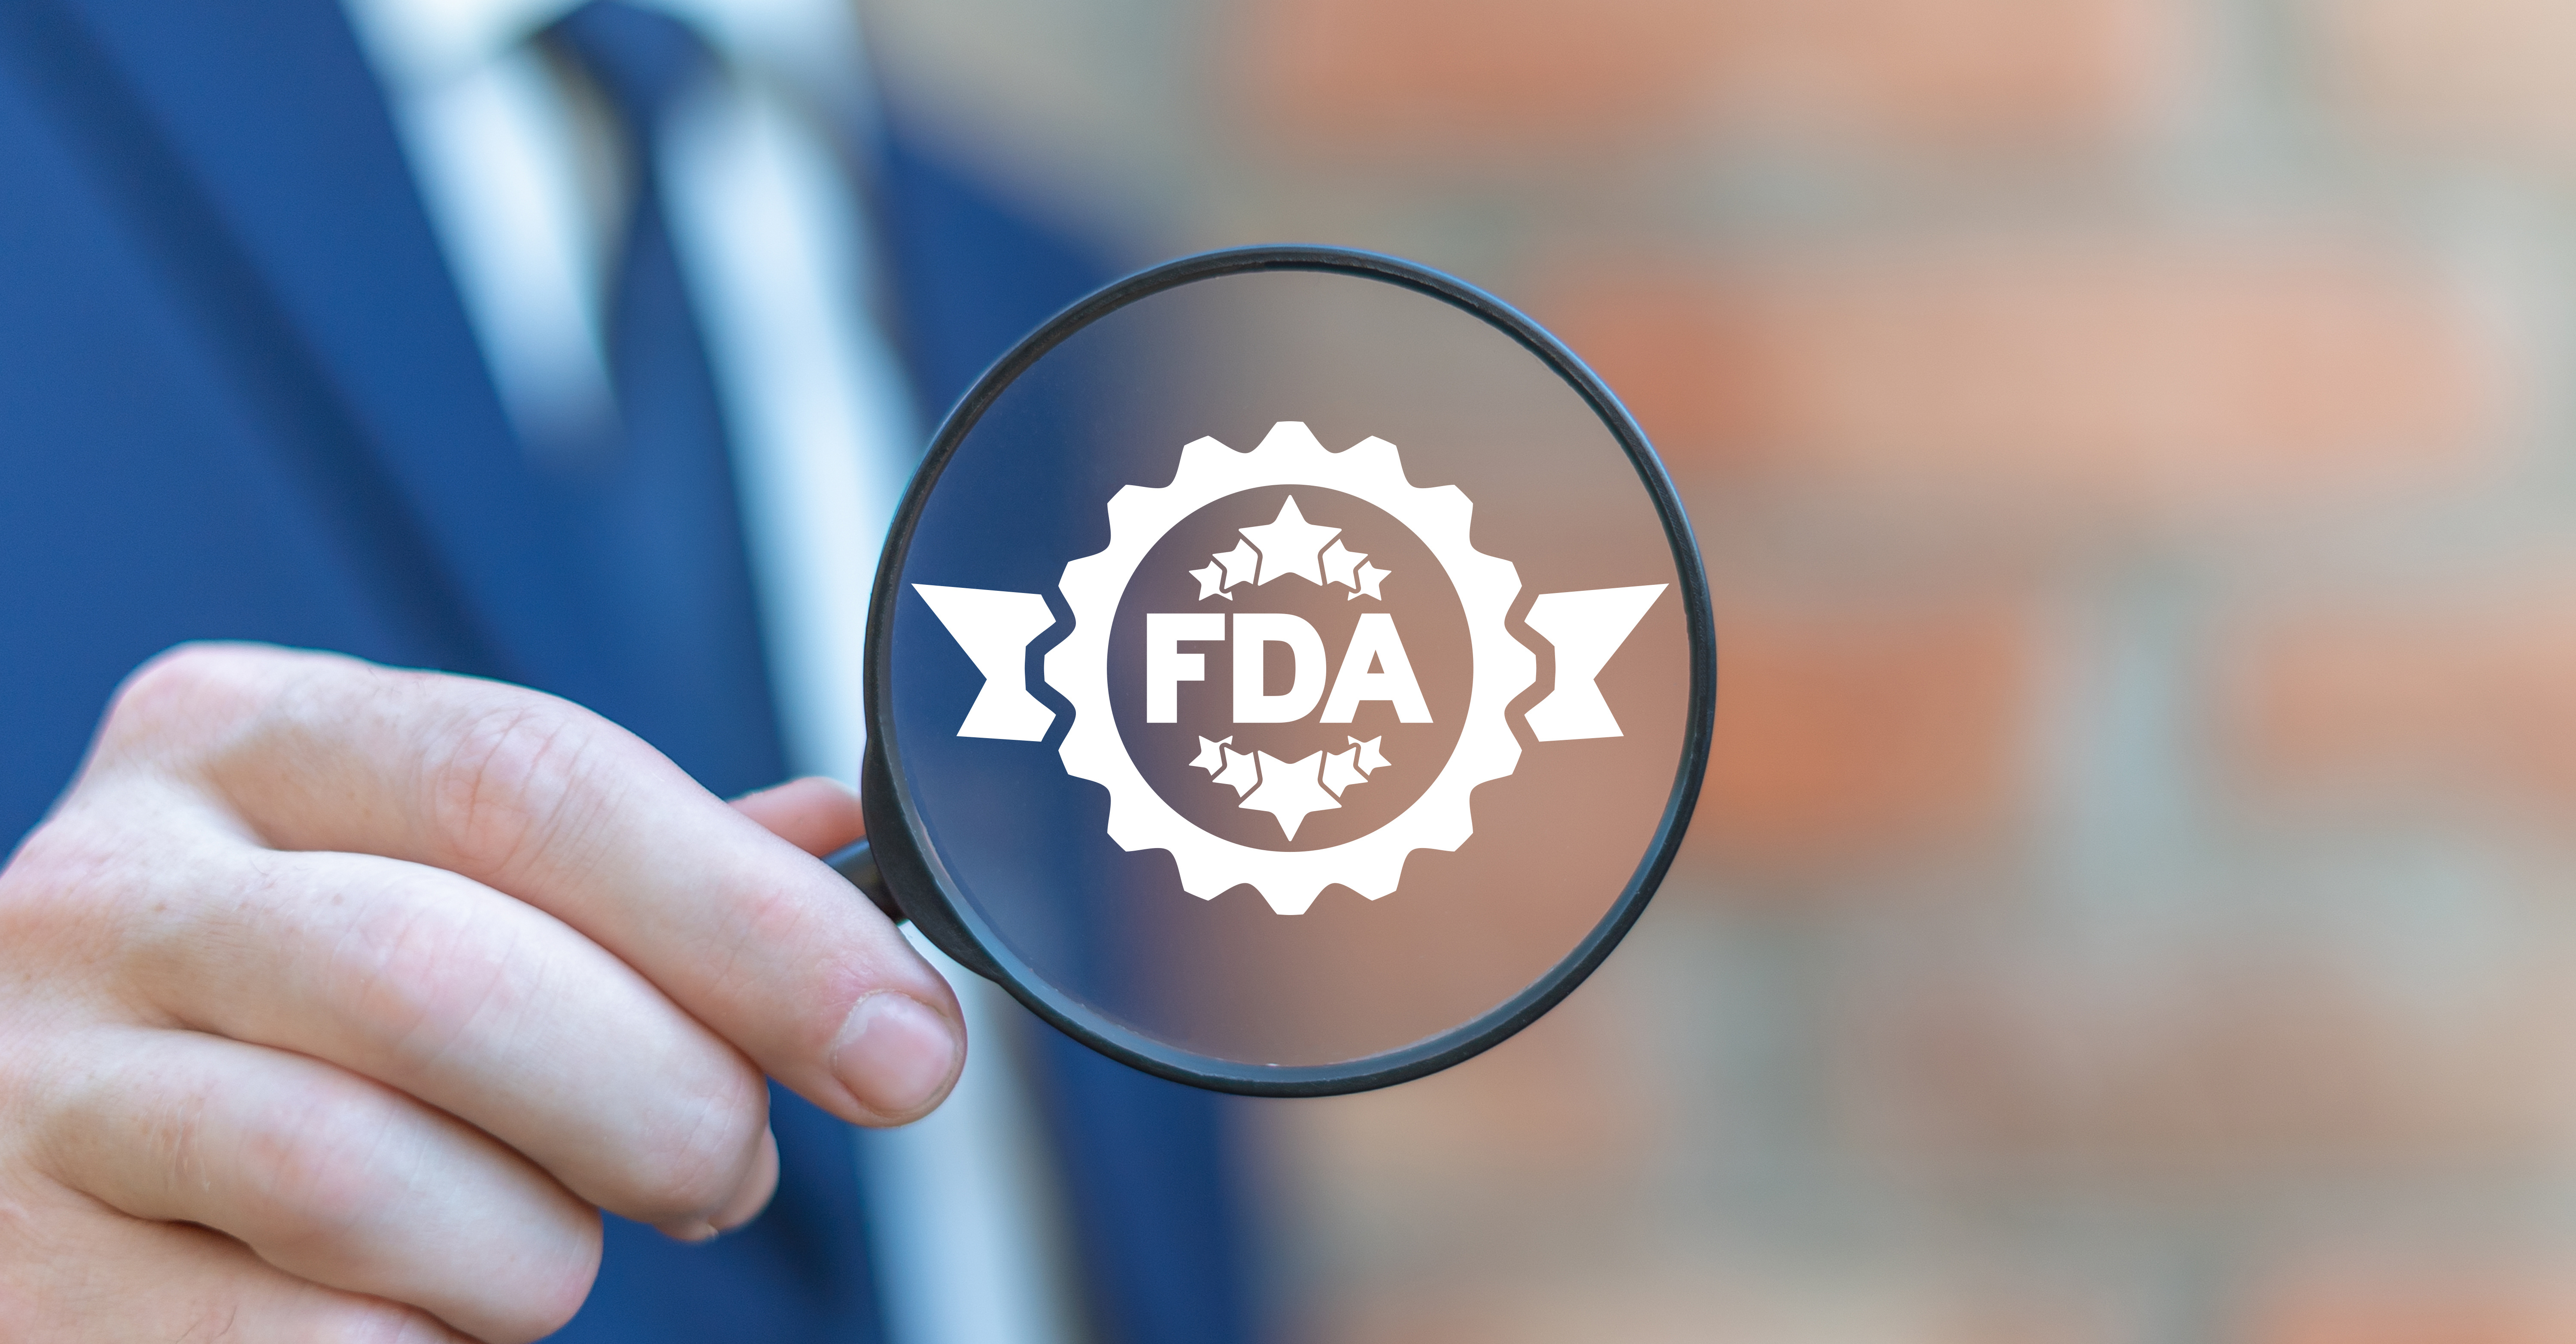 FDA launches programme to speed up development of COVID-19 treatments